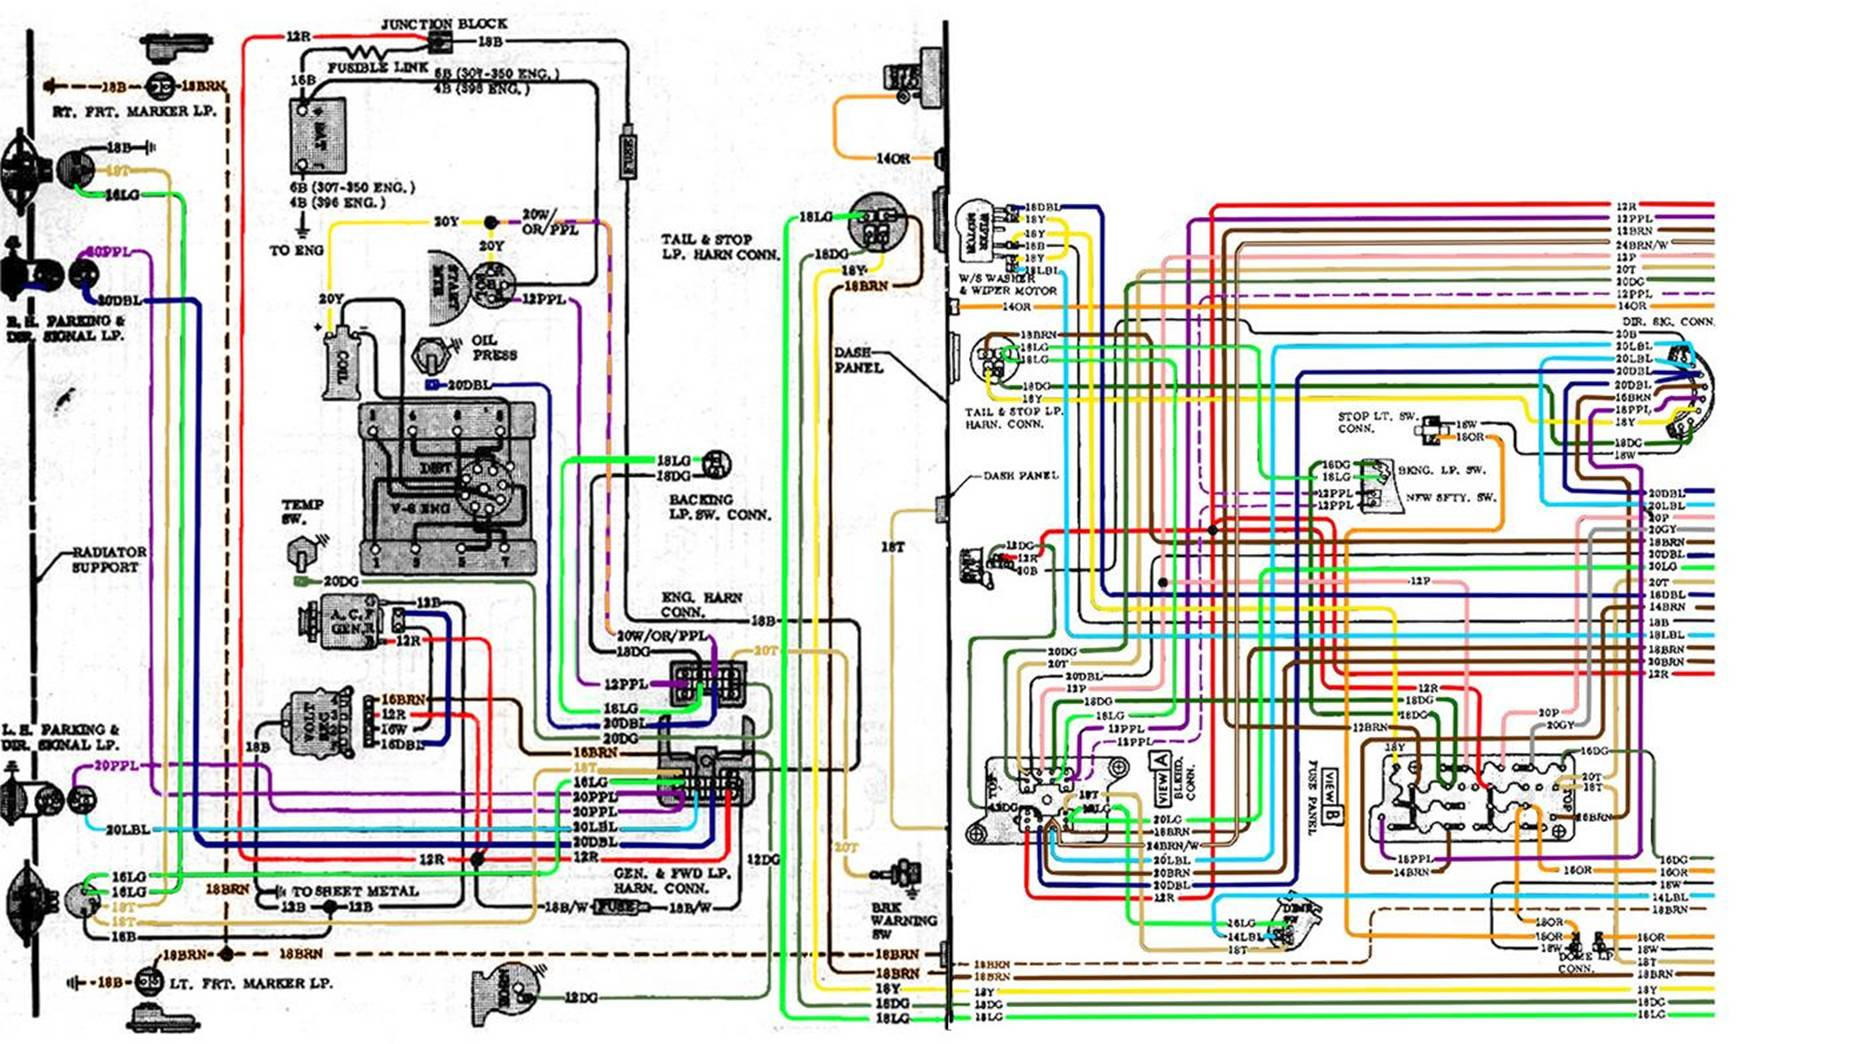 hight resolution of 67 72 chevy wiring diagram 67 chevy truck wiring diagram window 67 chevy truck wiring diagram